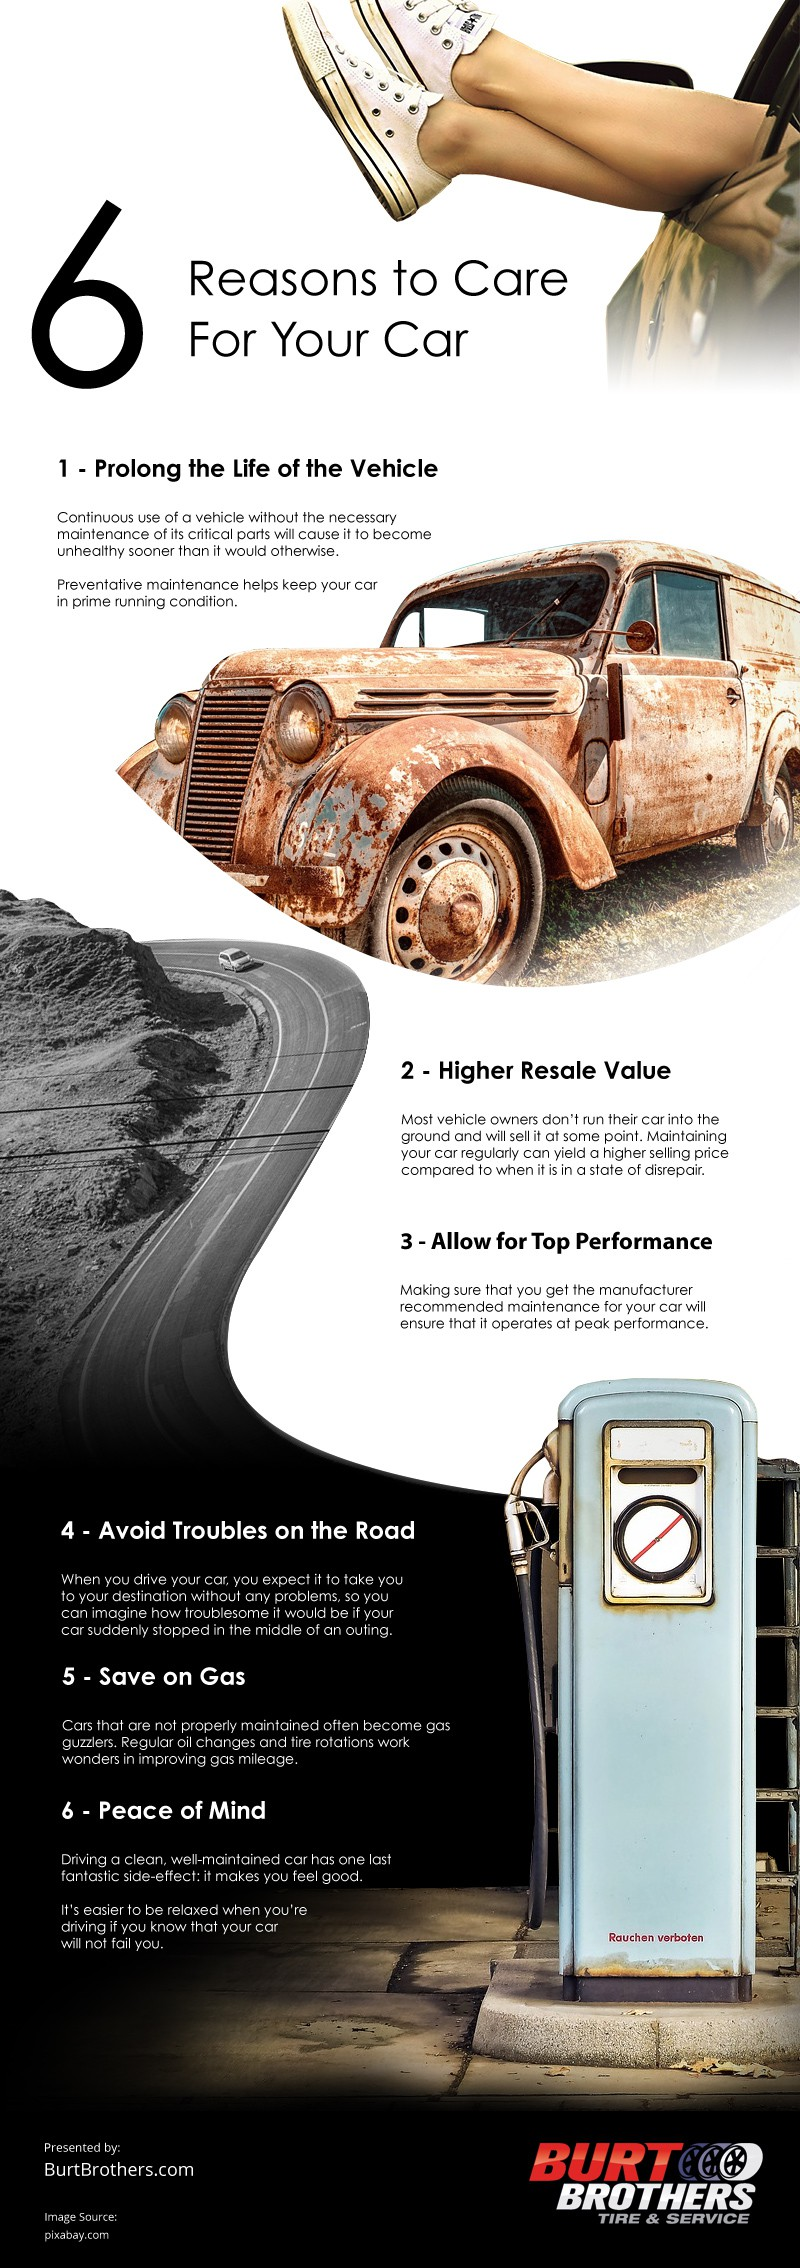 6 Reasons to Care for Your Car